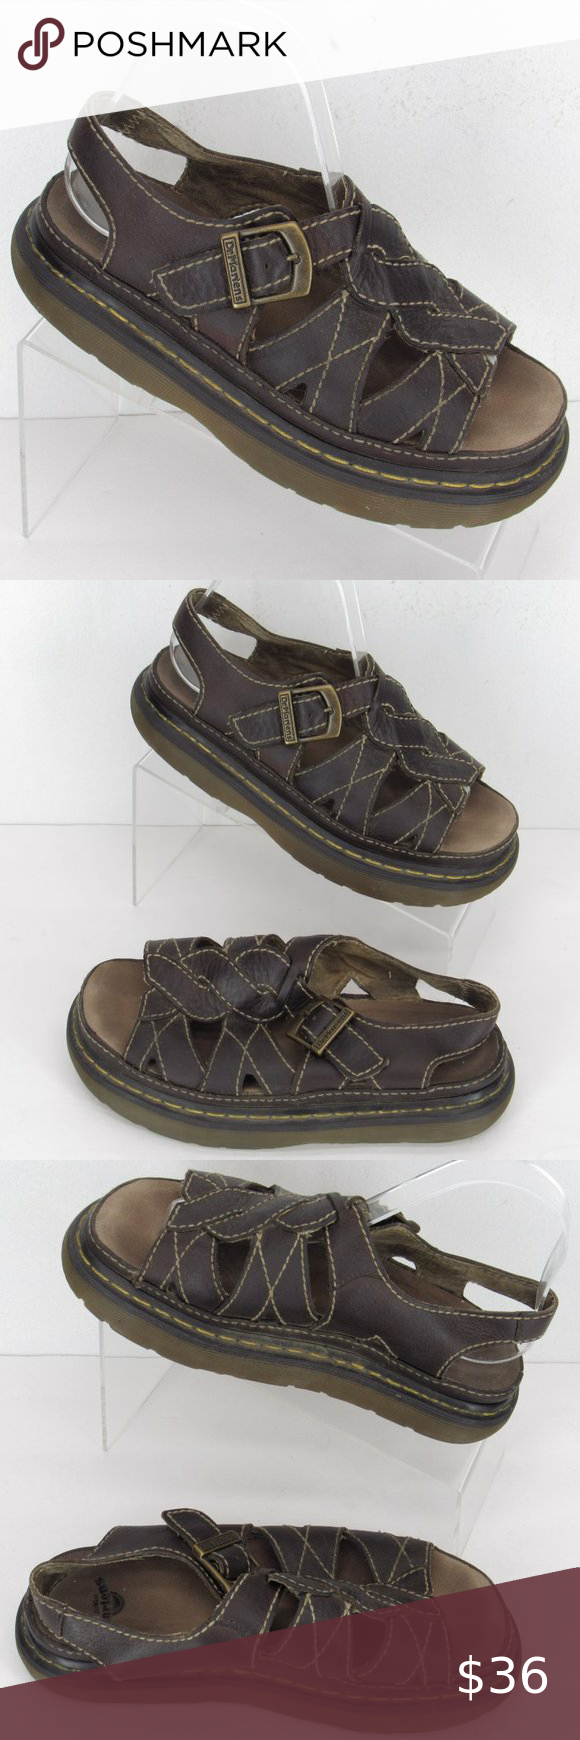 VTG DR. MARTENS Fisherman Sandals 8 Brown #058 Brand: DR. Martens Model: Style: Sandal Color: Brown Size: Women's 8 / Men's 7  Condition: These are pre-owned shoes in Good Condition and show light wear. Please be sure to review all photos prior to purchase.  Material: Leather Upper  All props, including shoe trees, are not included in purchase. Dr. Martens Shoes Sandals